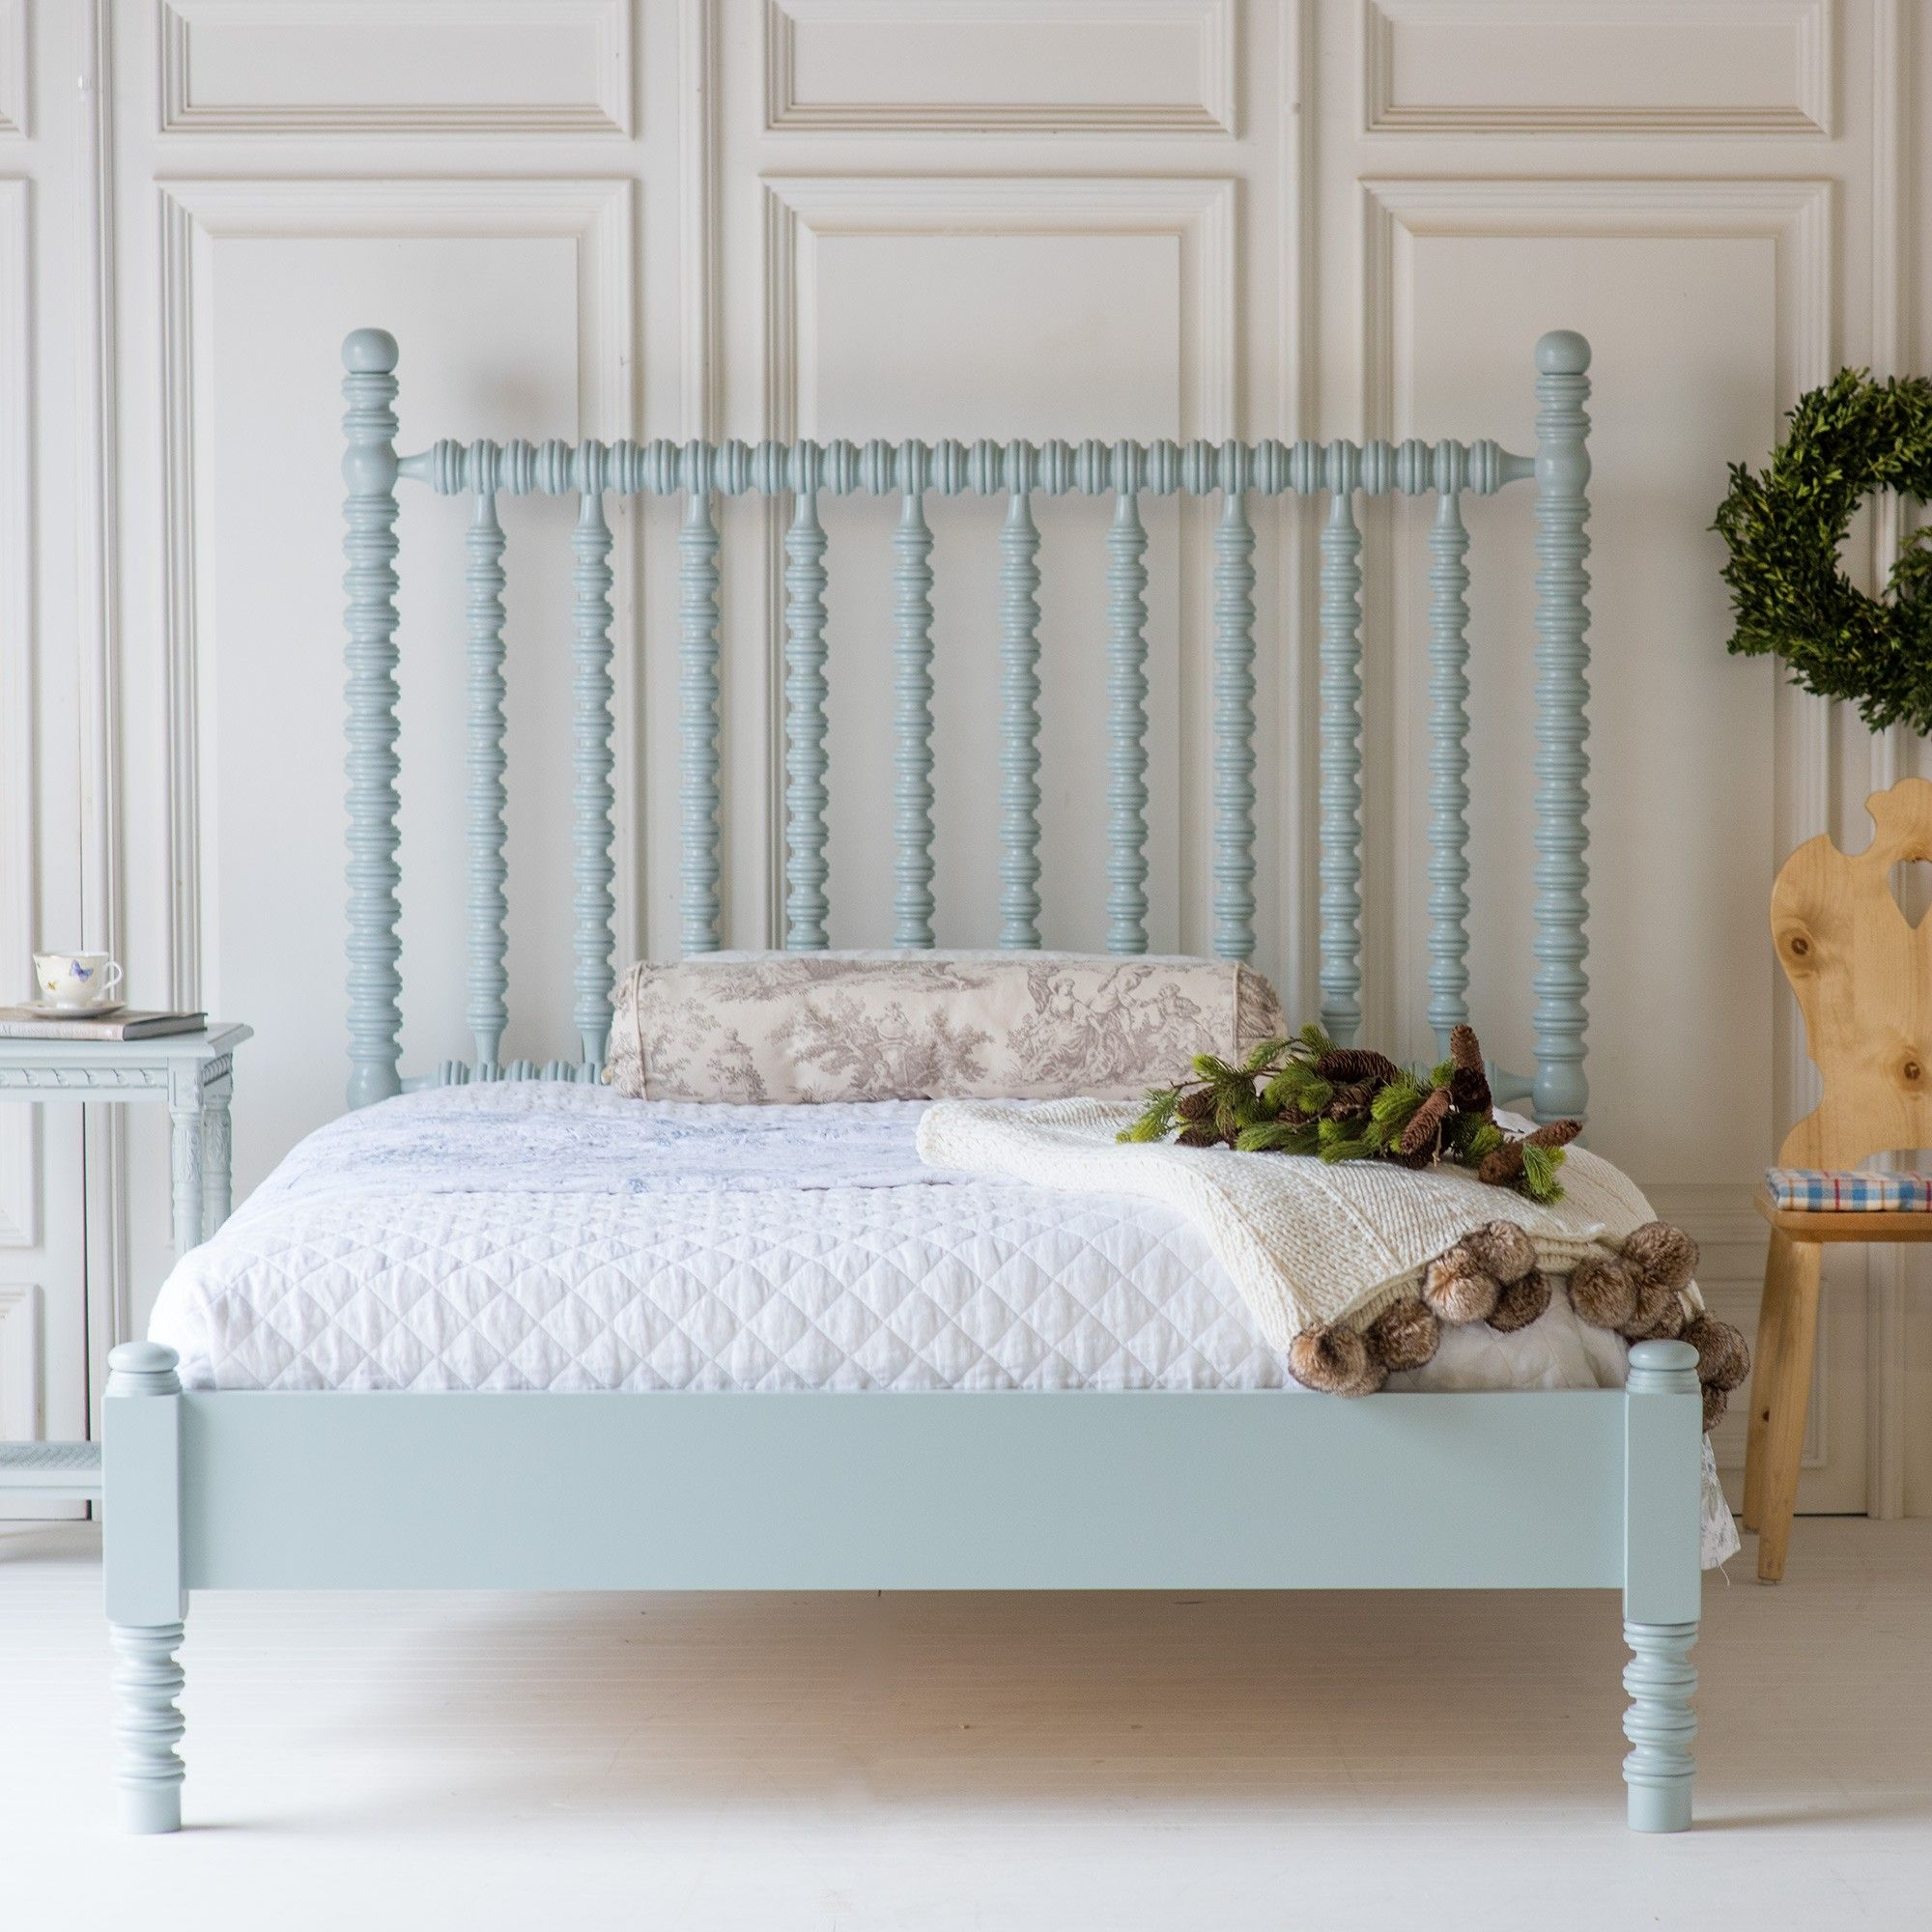 Harriett Spindle Bed, Low Footboard White wooden bed